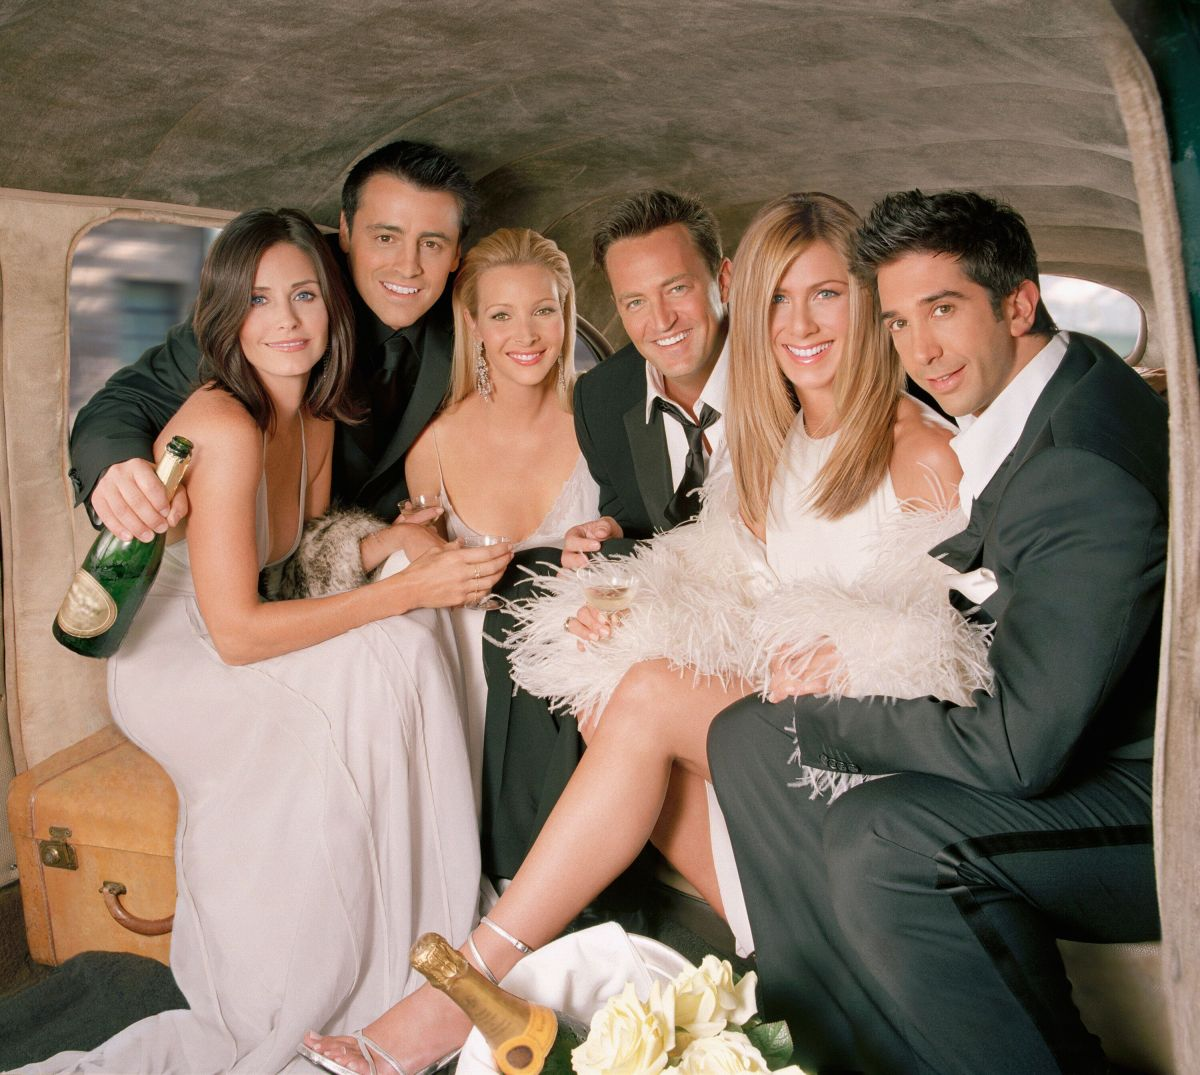 The cast of Friends pictured ahead of the show's last series in